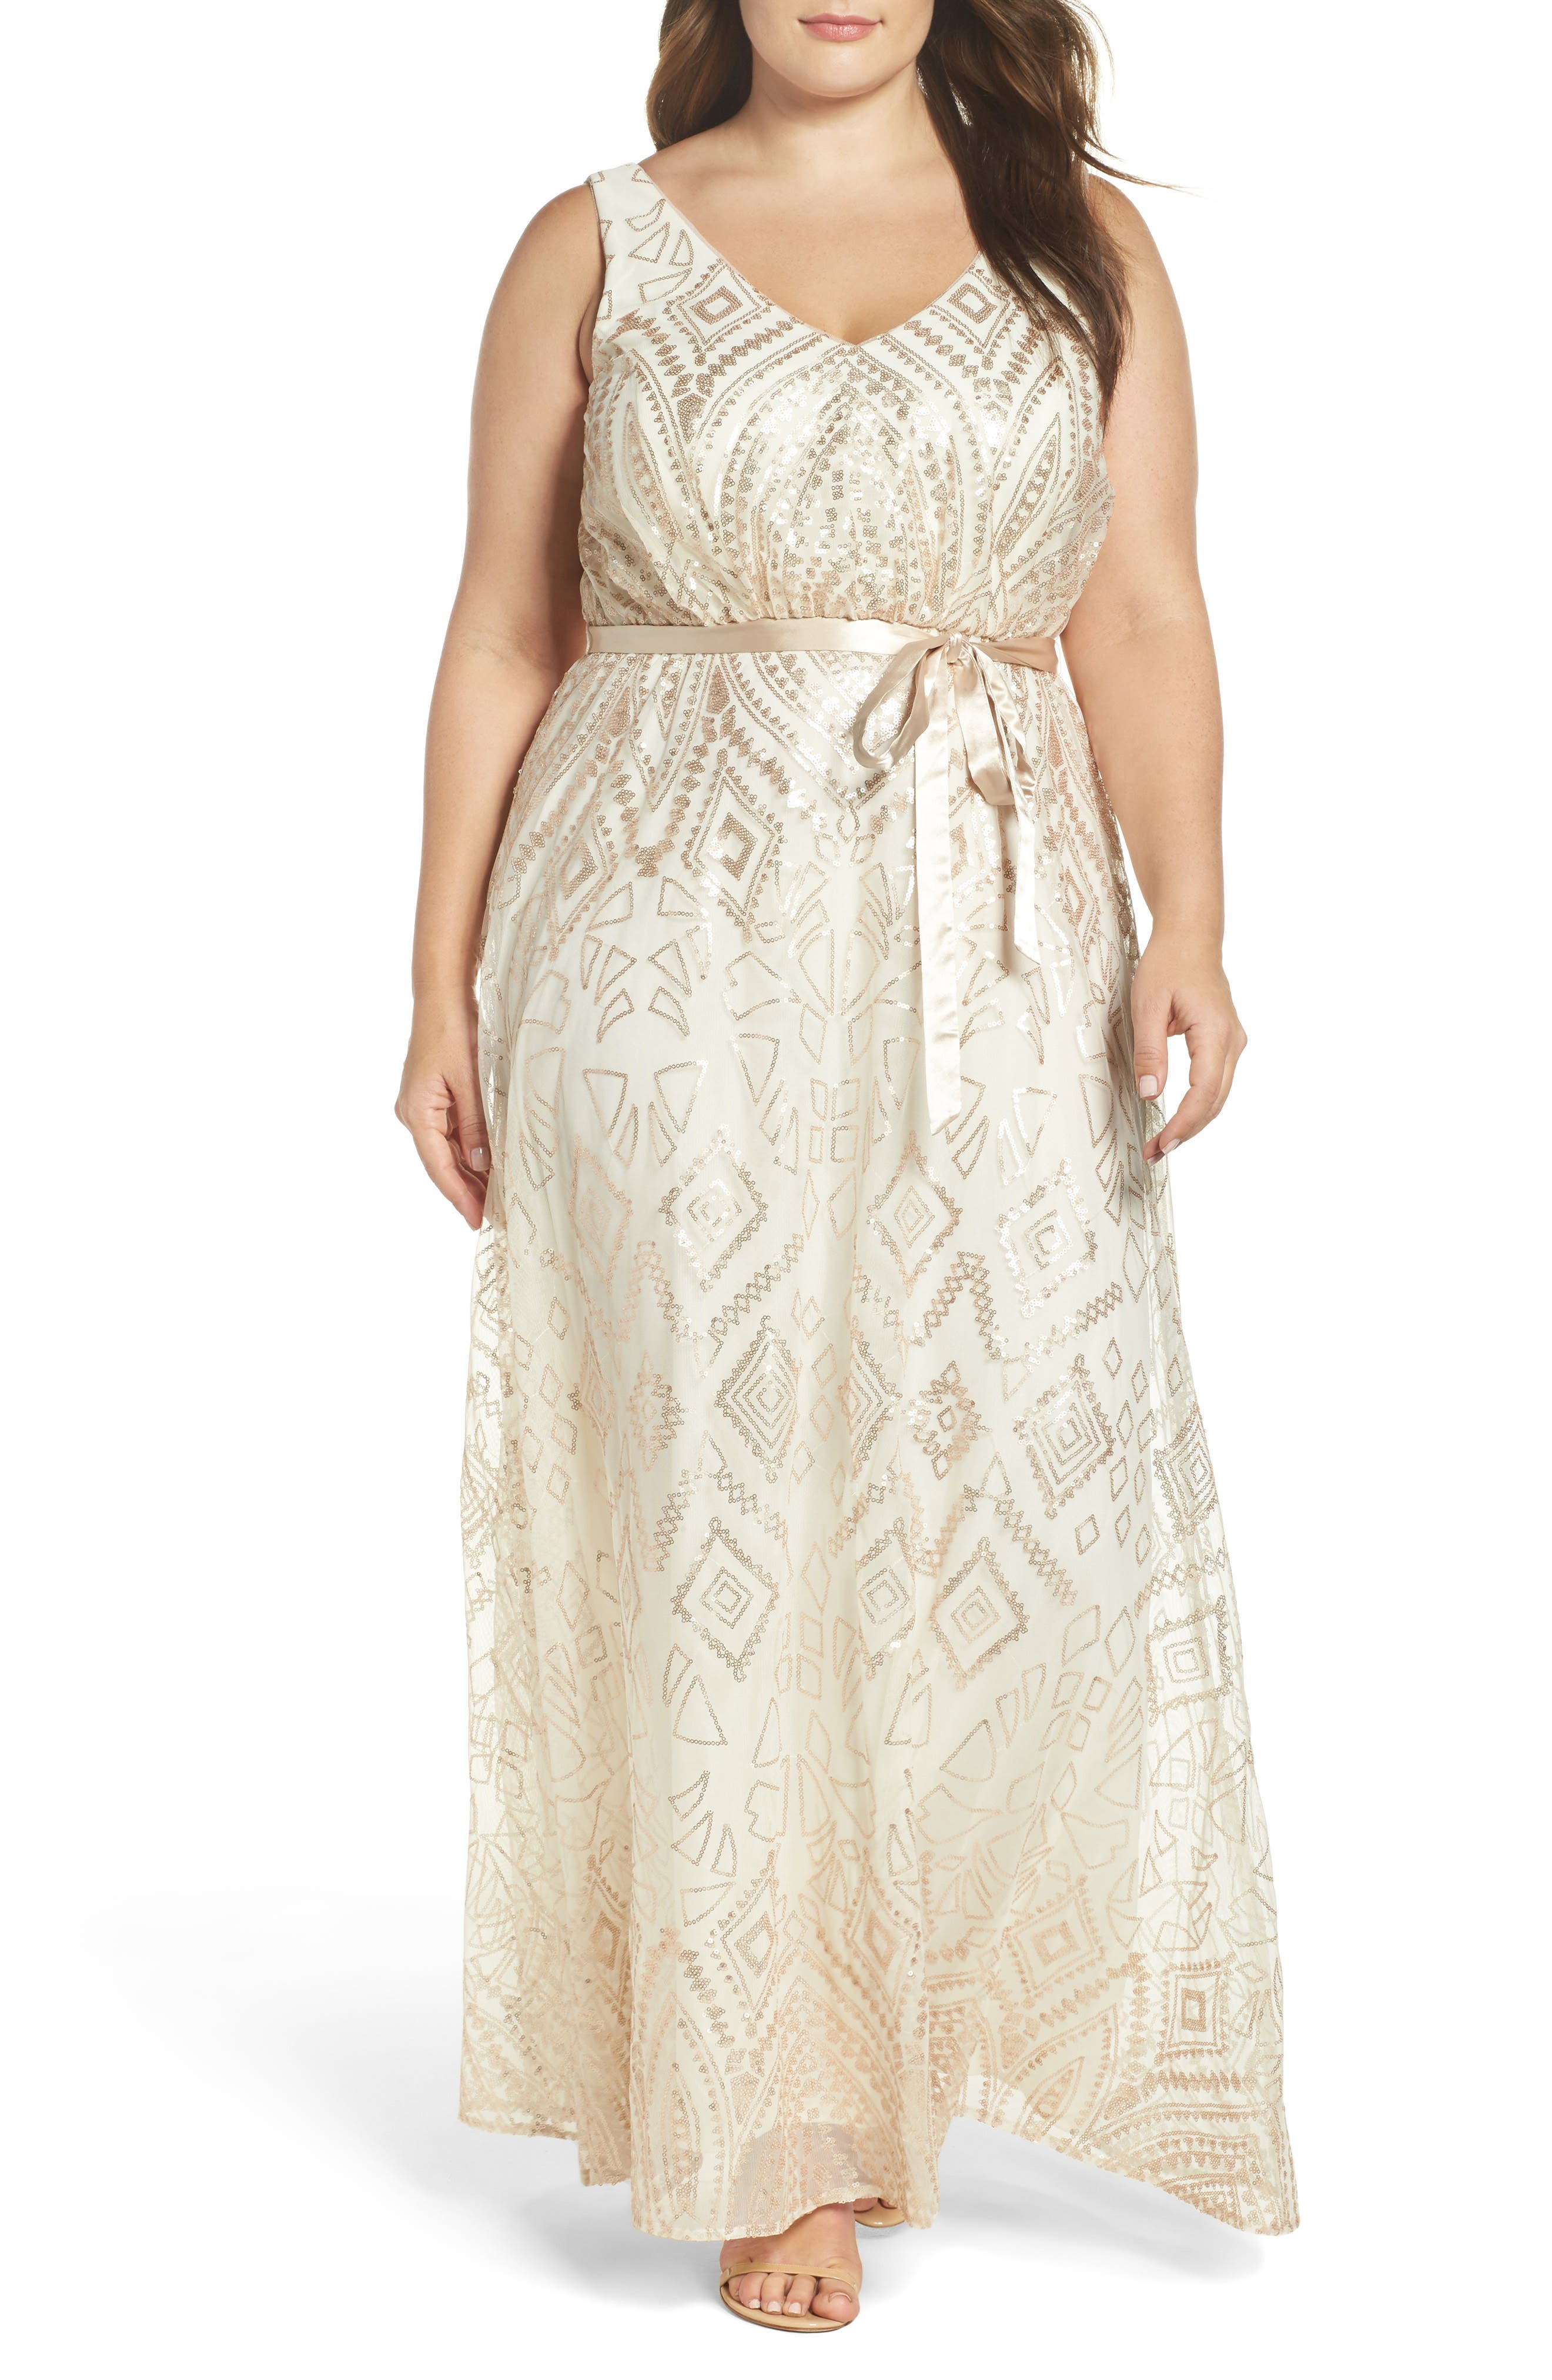 Marina Sequin Mesh Belted Long Dress (Plus Size)